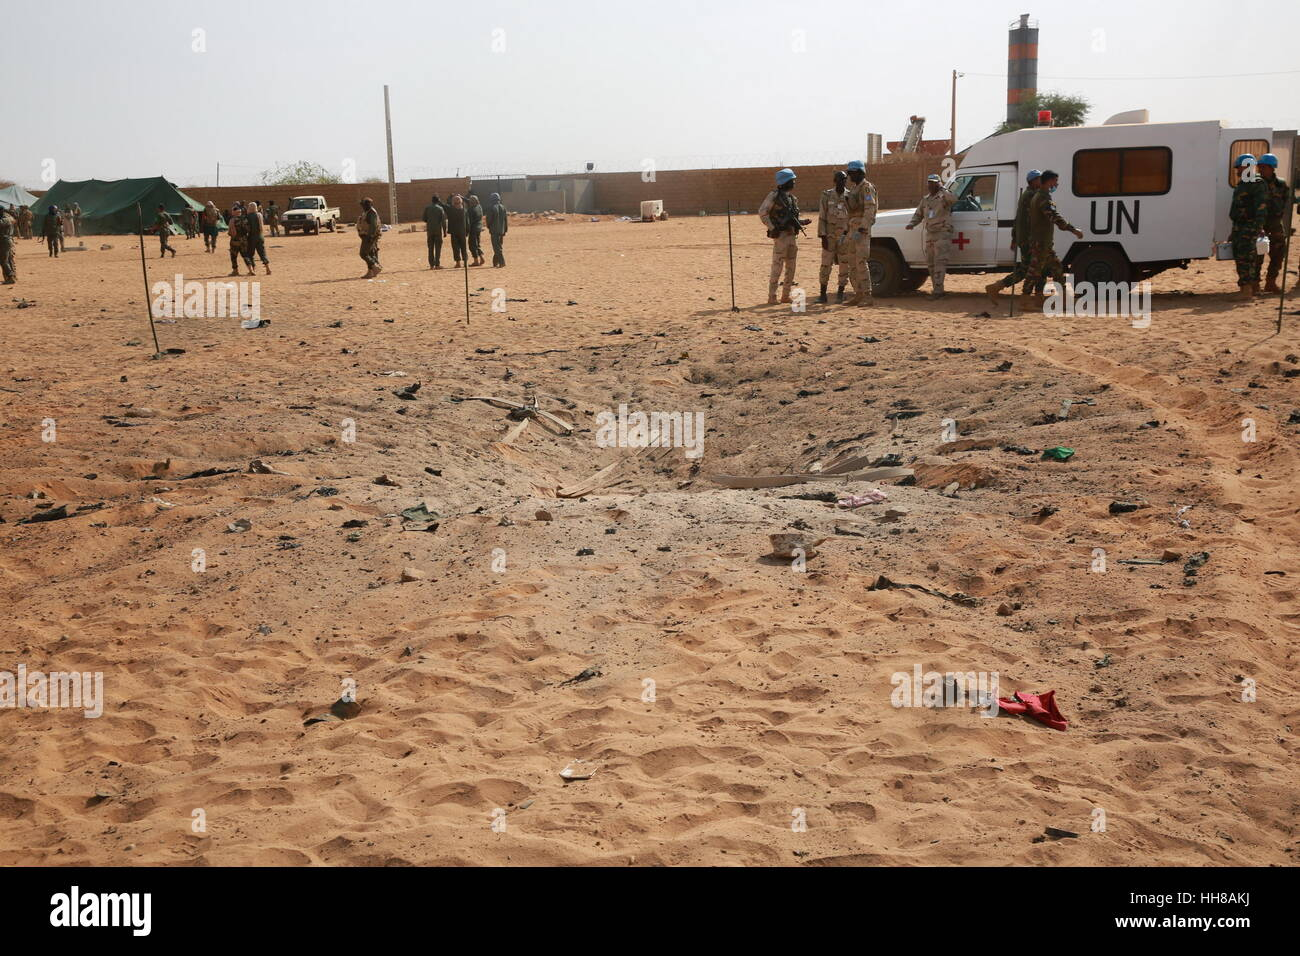 Gao, Mali. 18th January 2017. Photo taken on Jan. 18, 2017 shows the crater at a car bomb attack site in Gao, Mali. Stock Photo